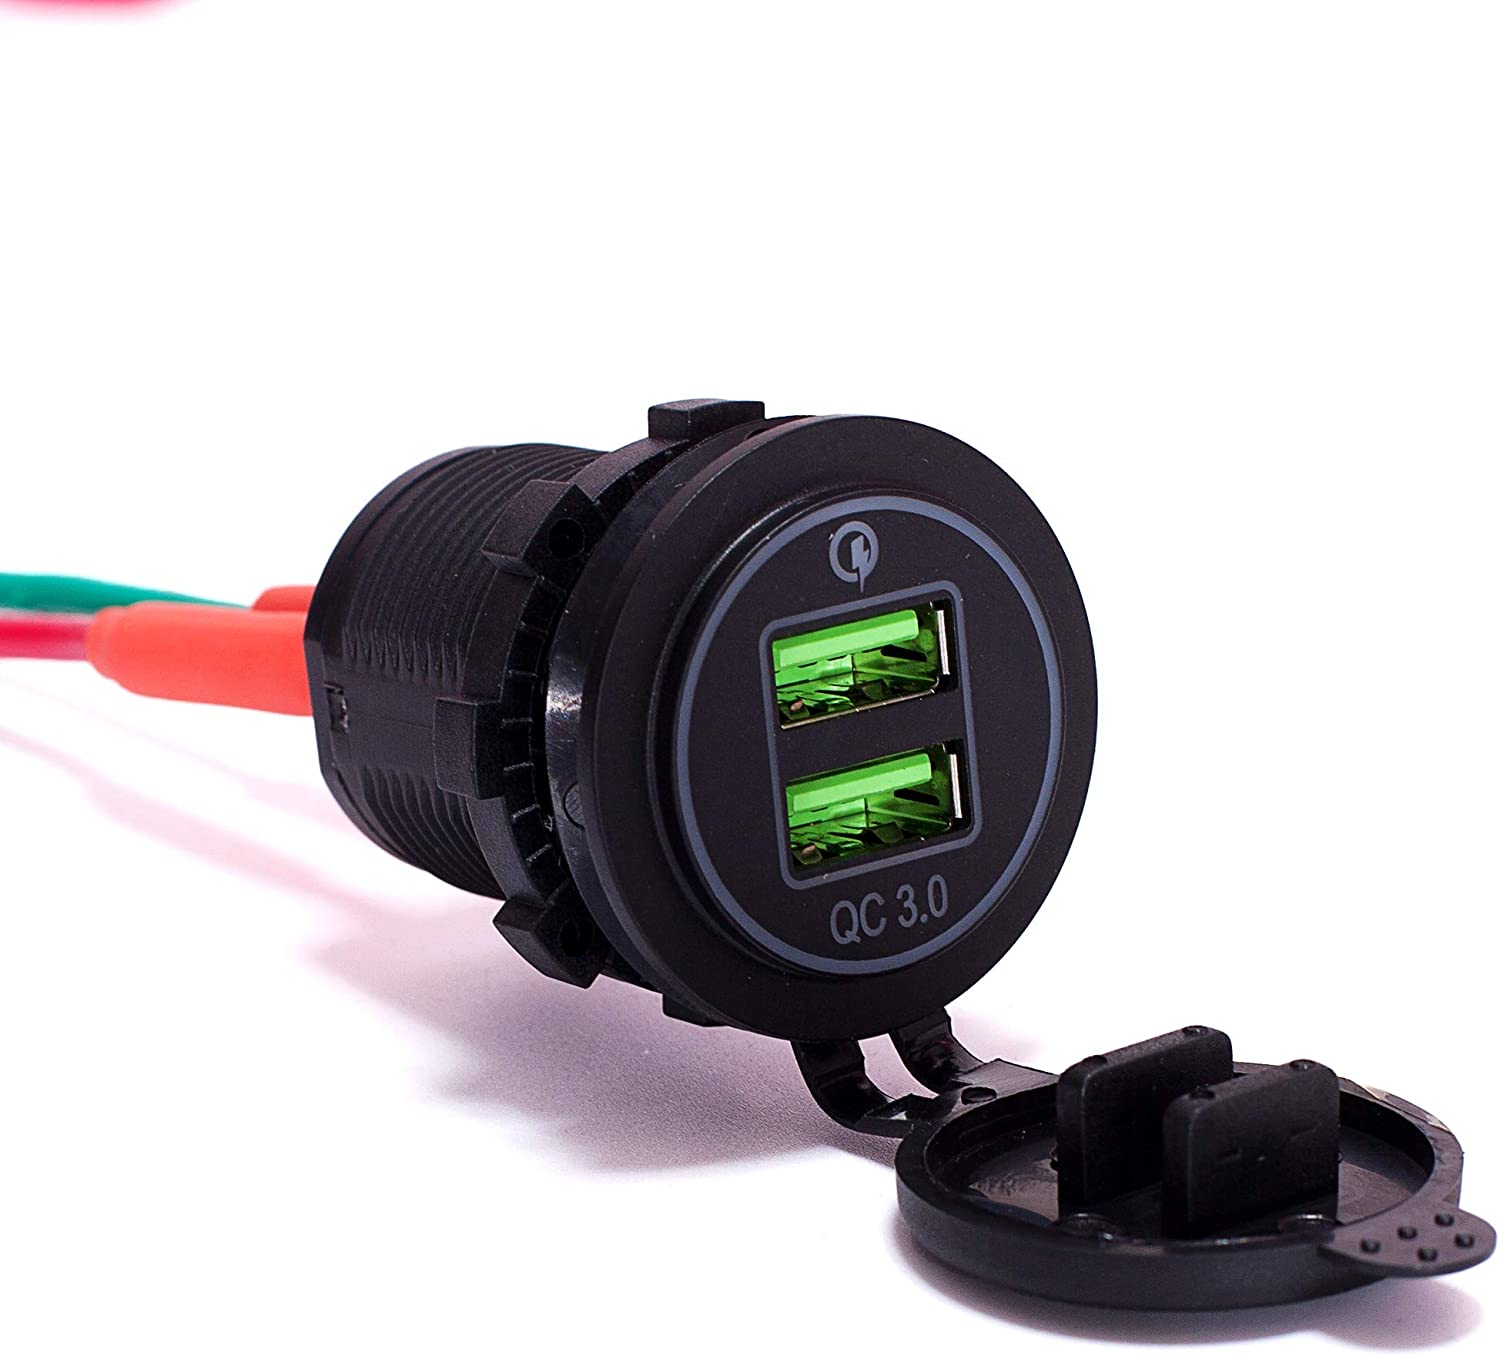 Ginsco Quick Charge 3.0 Dual USB Charger Socket Fast Charger with 10A Fuse Wire DIY kit LED Blue for Car Boat Marine Motorcycle Truck RV